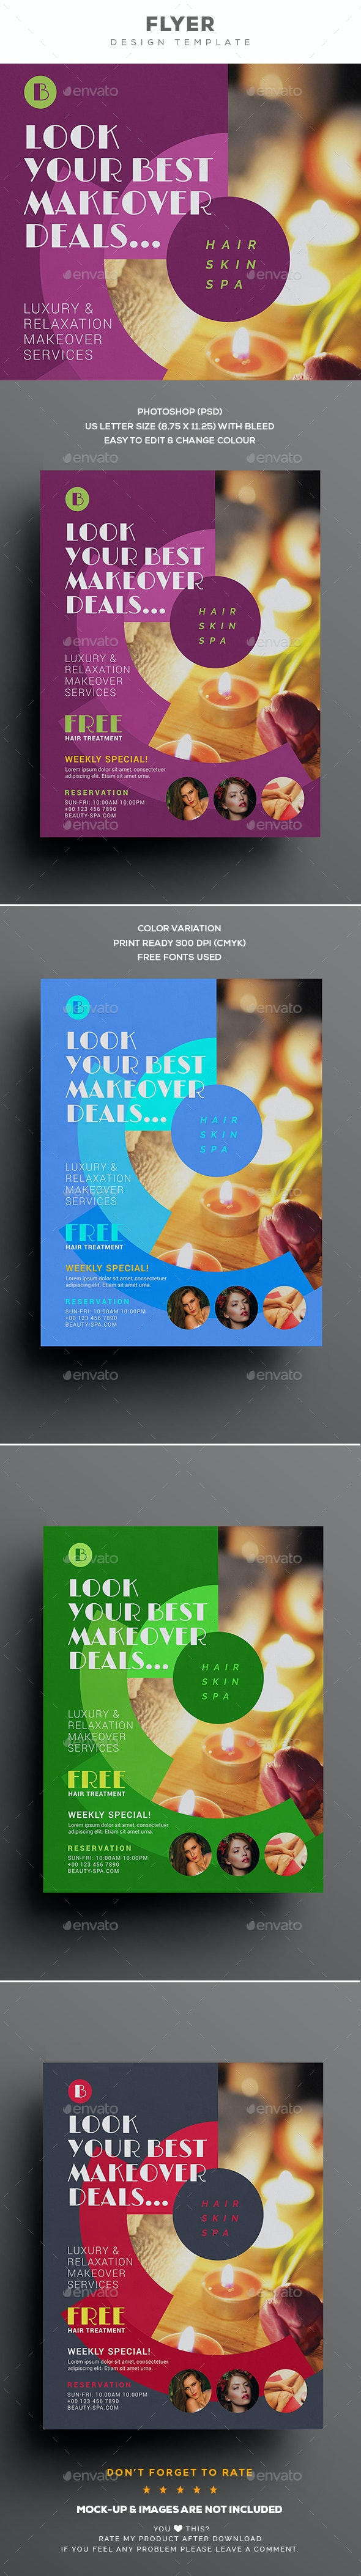 Beauty Care Flyer - Corporate Flyers